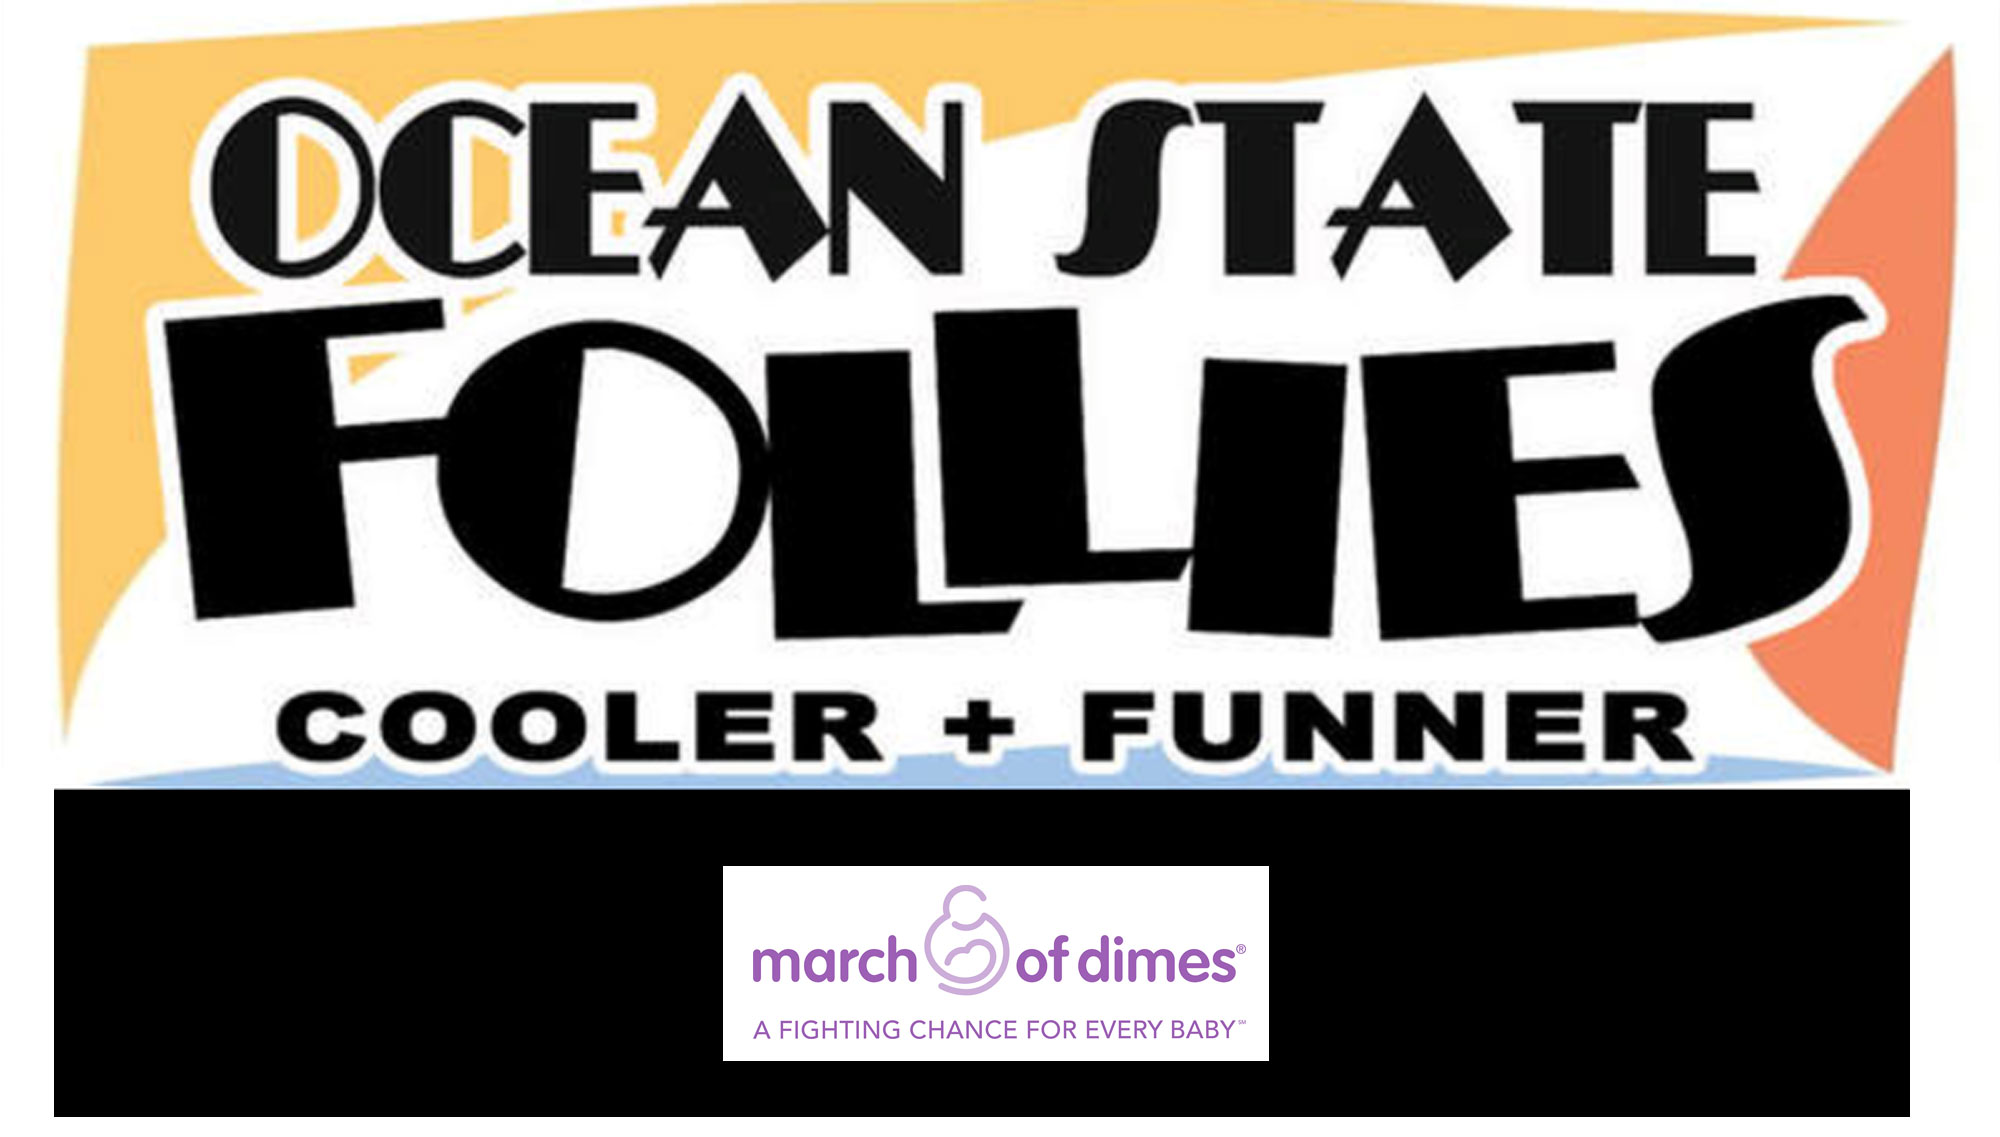 OCEAN STATE FOLLIES TO BENEFIT THE MARCH OF DIMES  <H5>March 3  </h5>